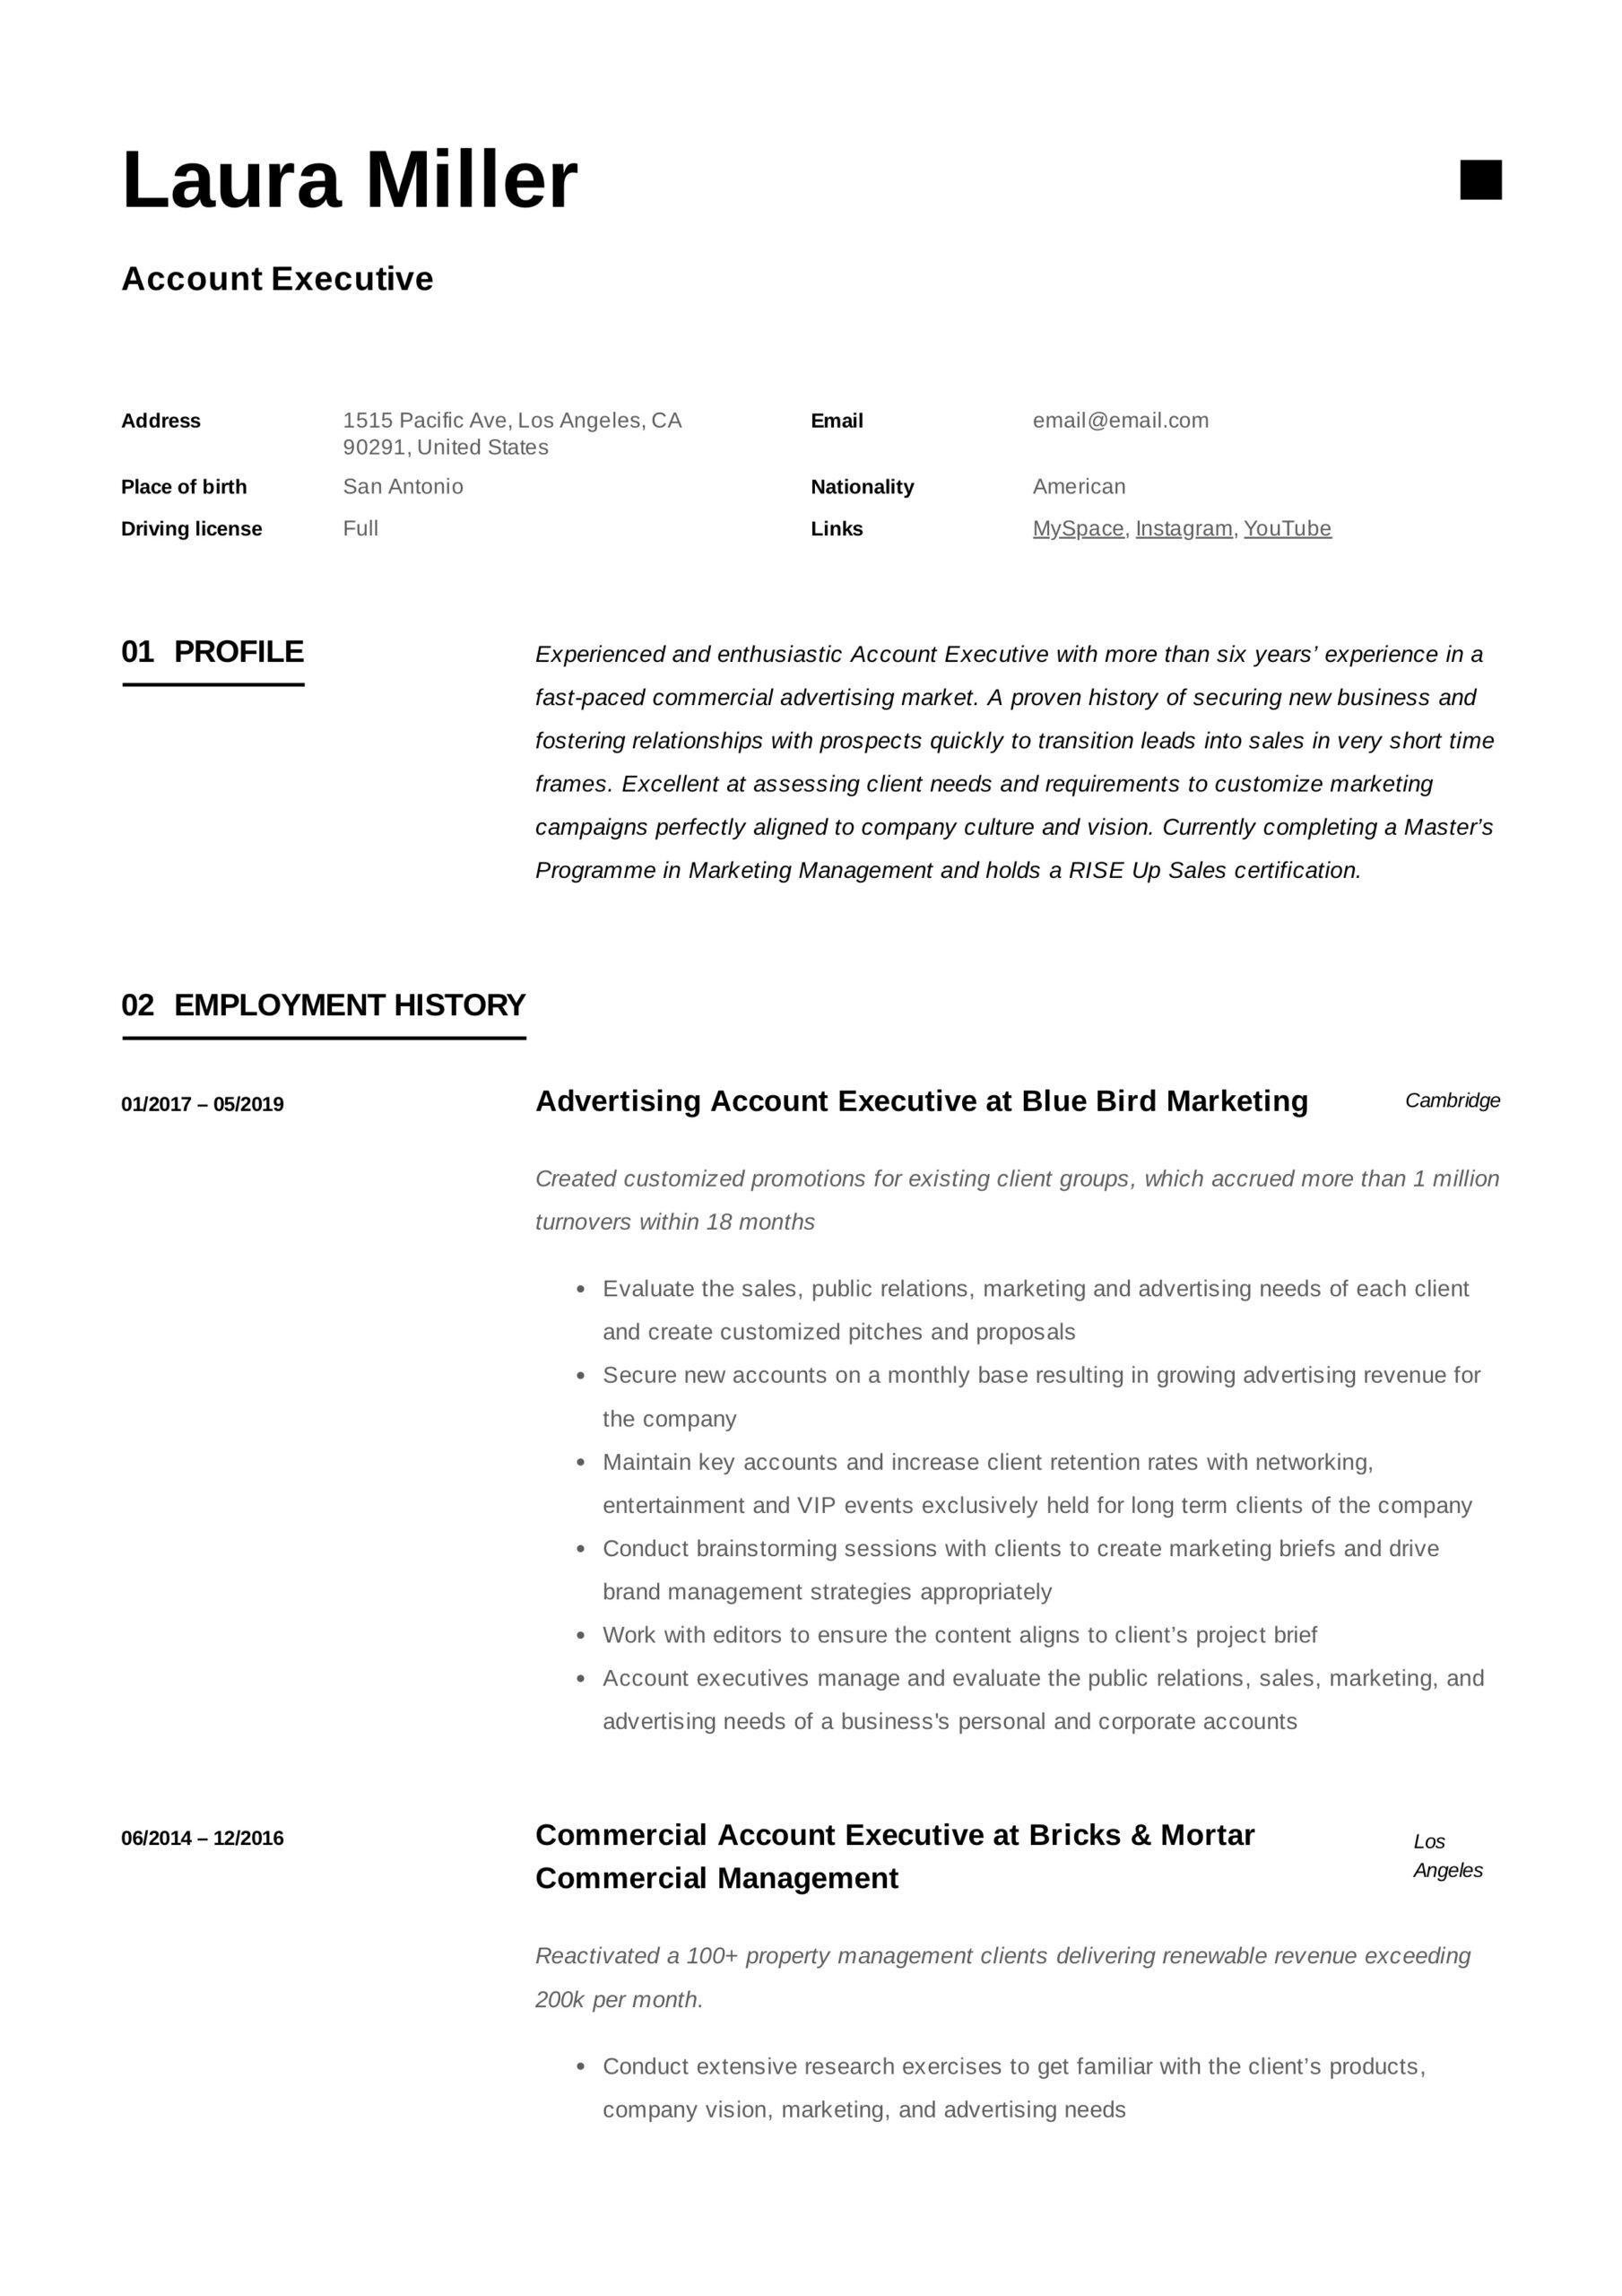 account executive resume writing guide templates pdf examples example payroll vipkid Resume Account Executive Resume Examples